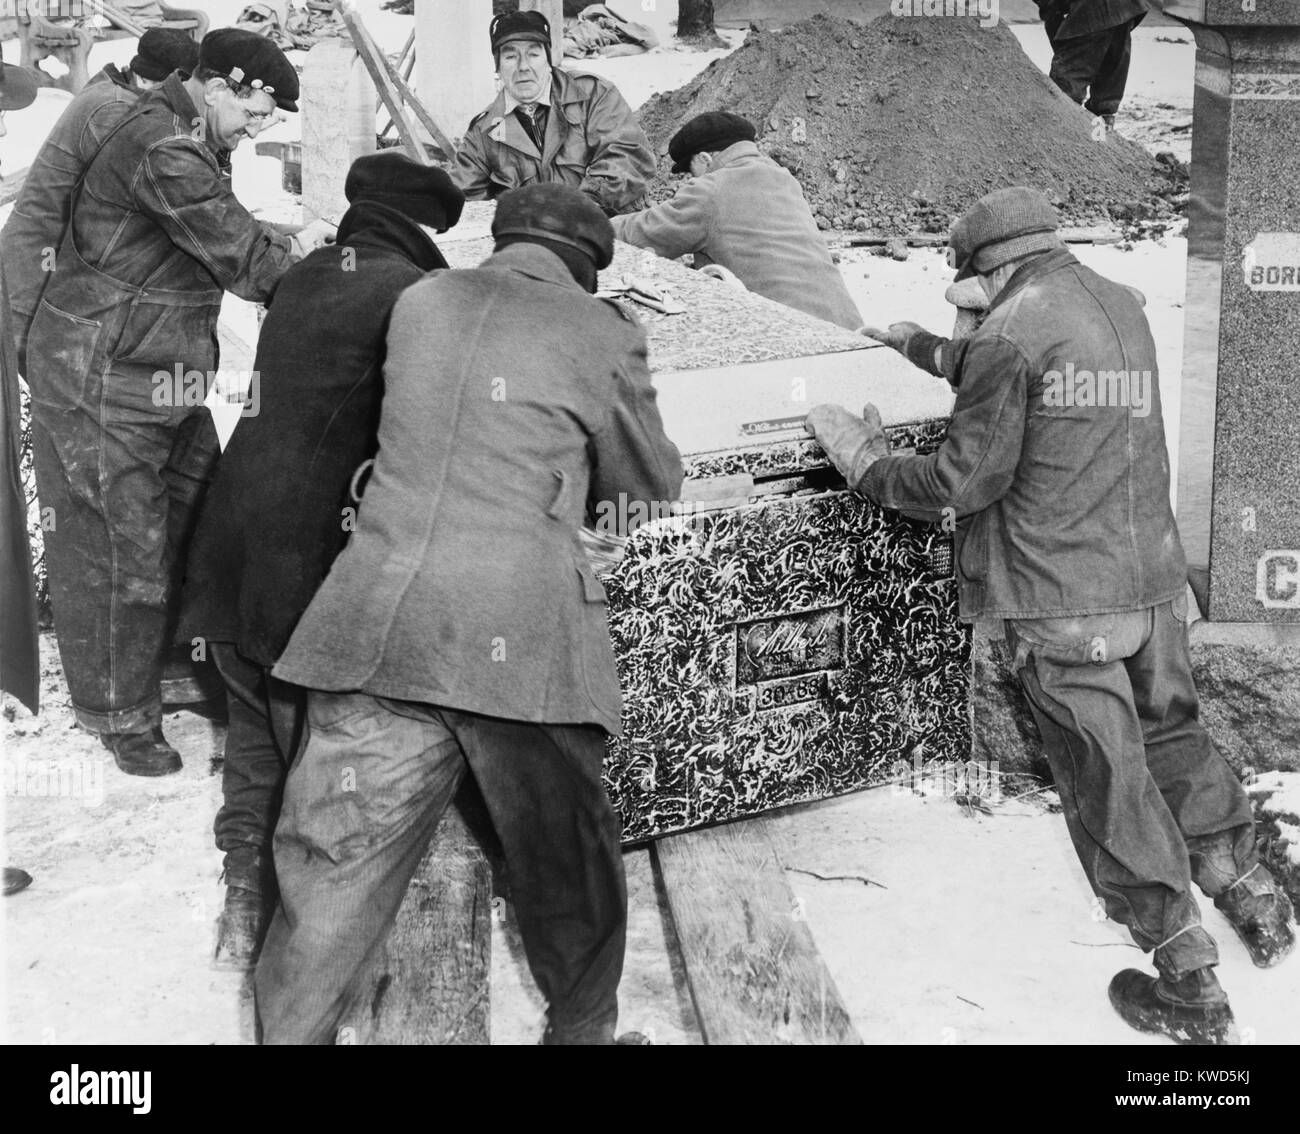 Burying Al Capone. Workmen at Mt. Olivet Cemetery in Chicago moving the vault with Al Capone's body. Feb. 6, 1947. Stock Photo